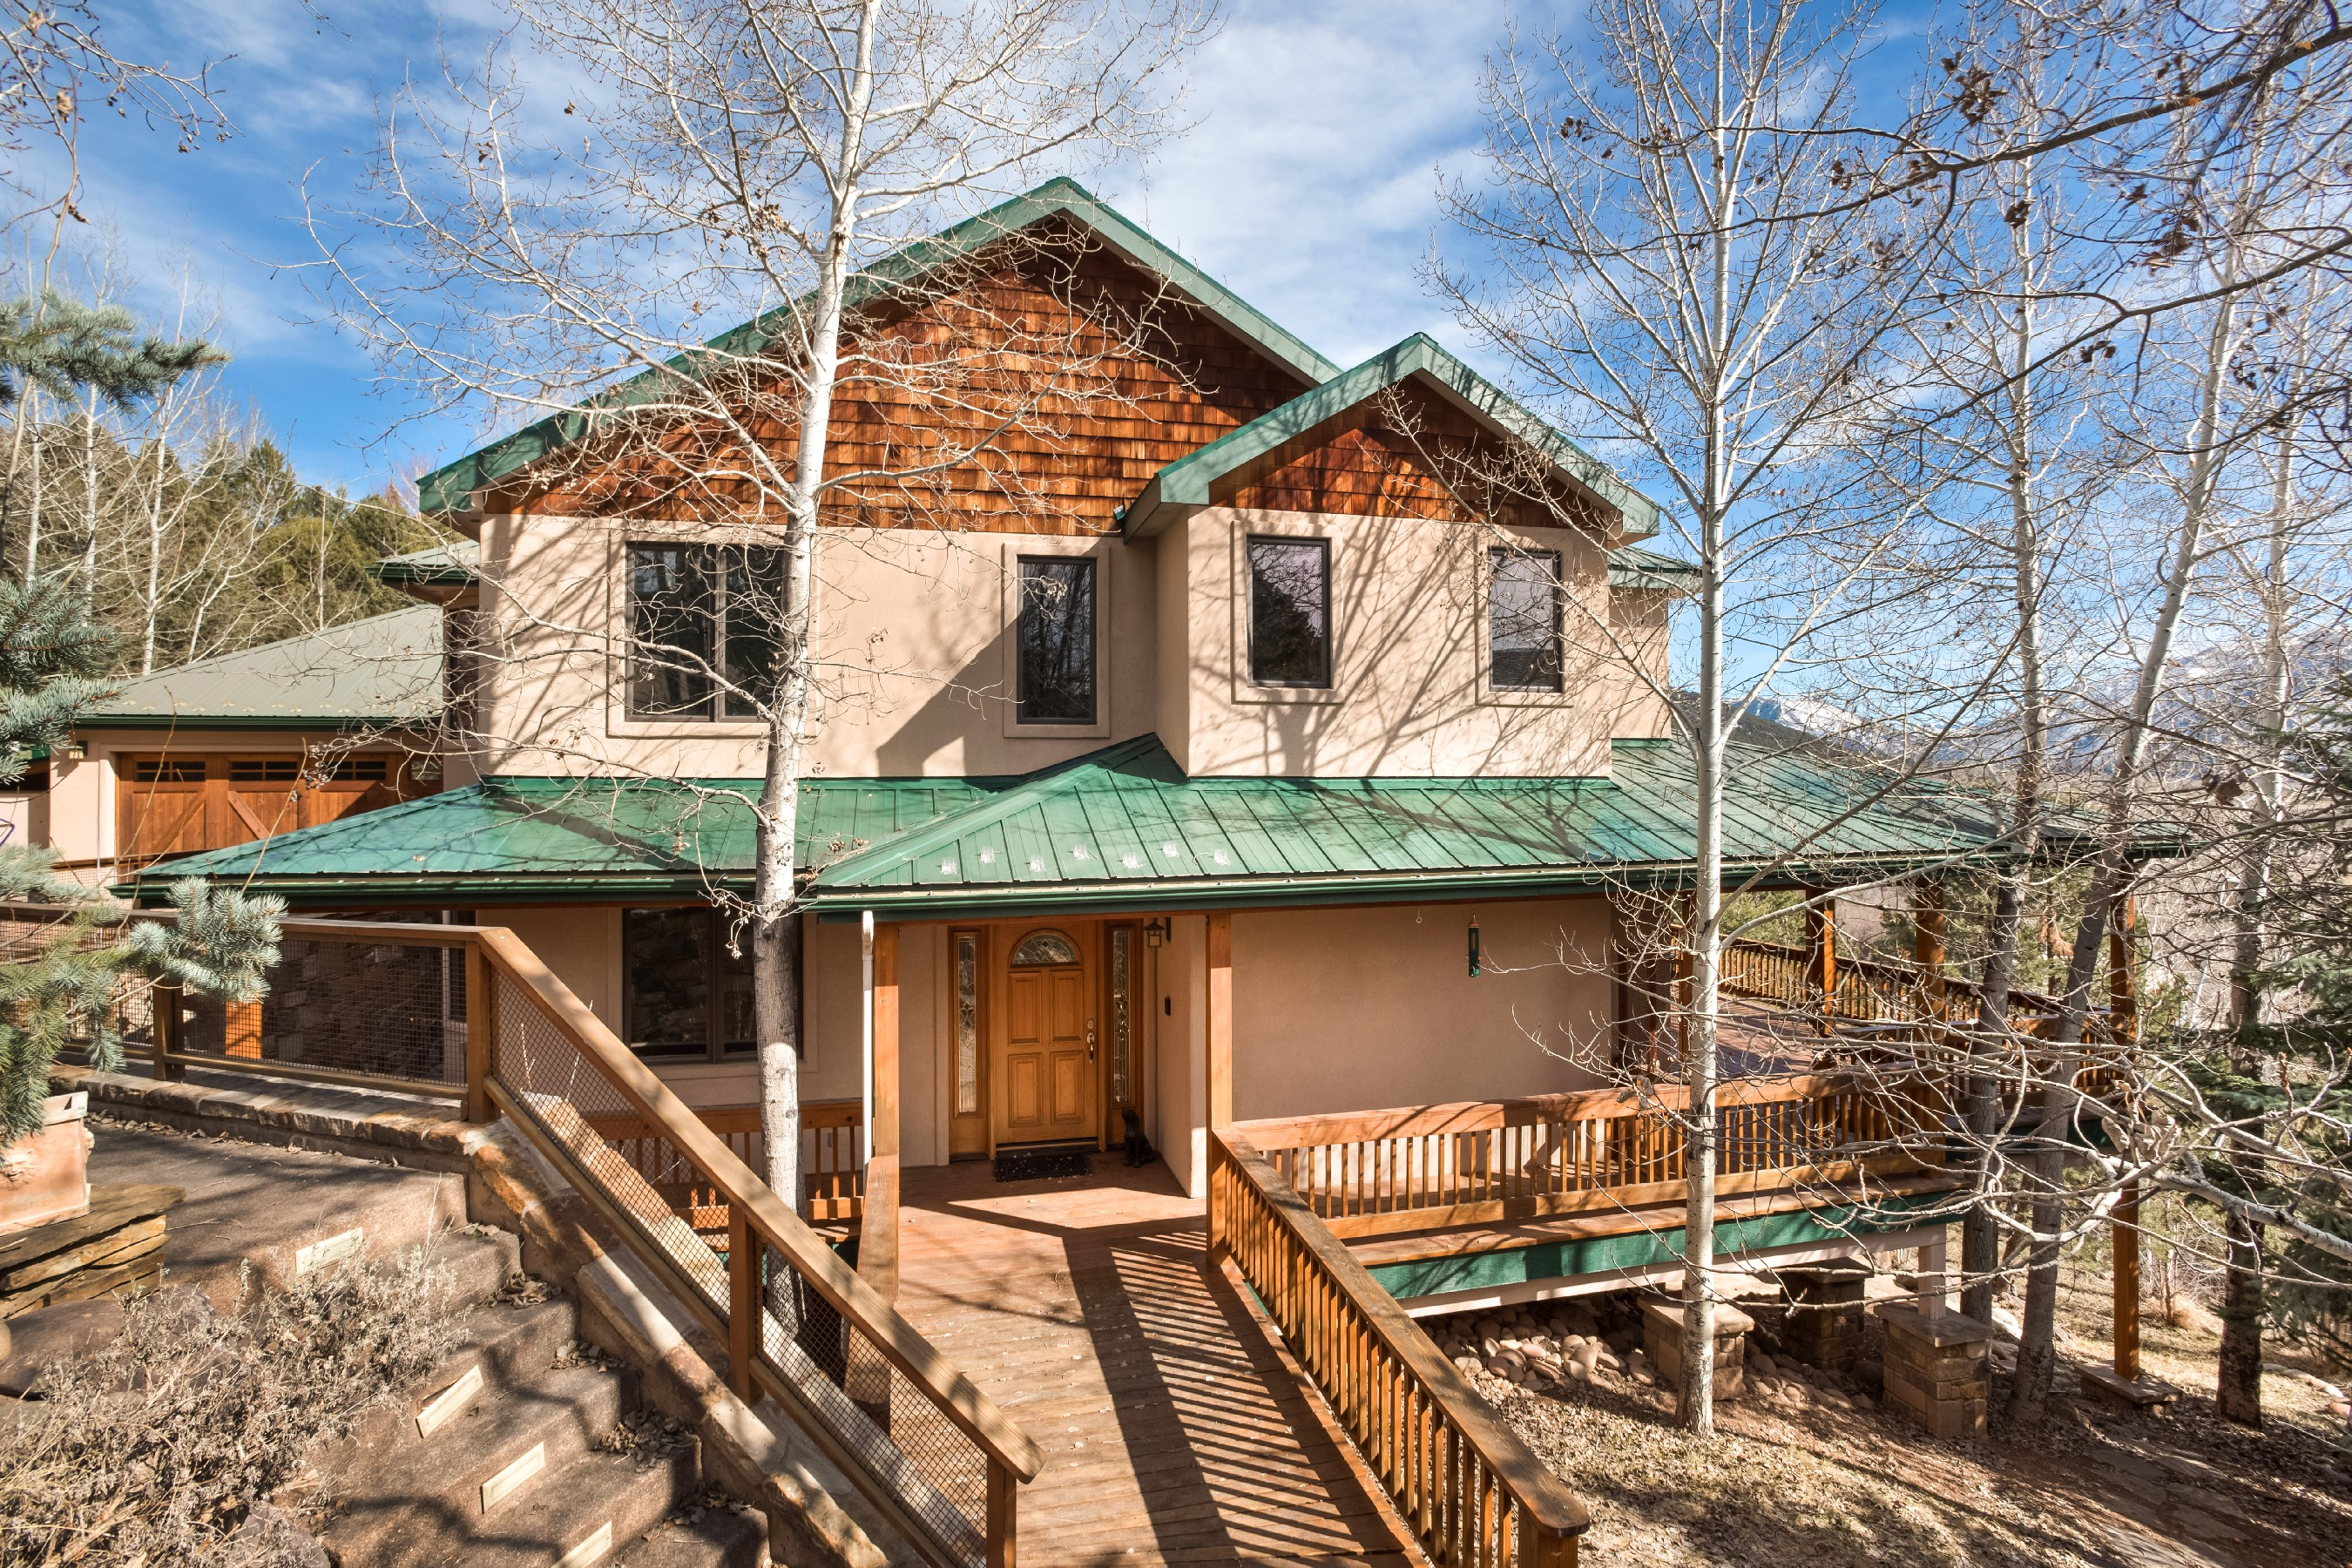 Single Family Home for Sale at Basalt Ridge 136 Ridge Road Basalt, Colorado, 81621 United States